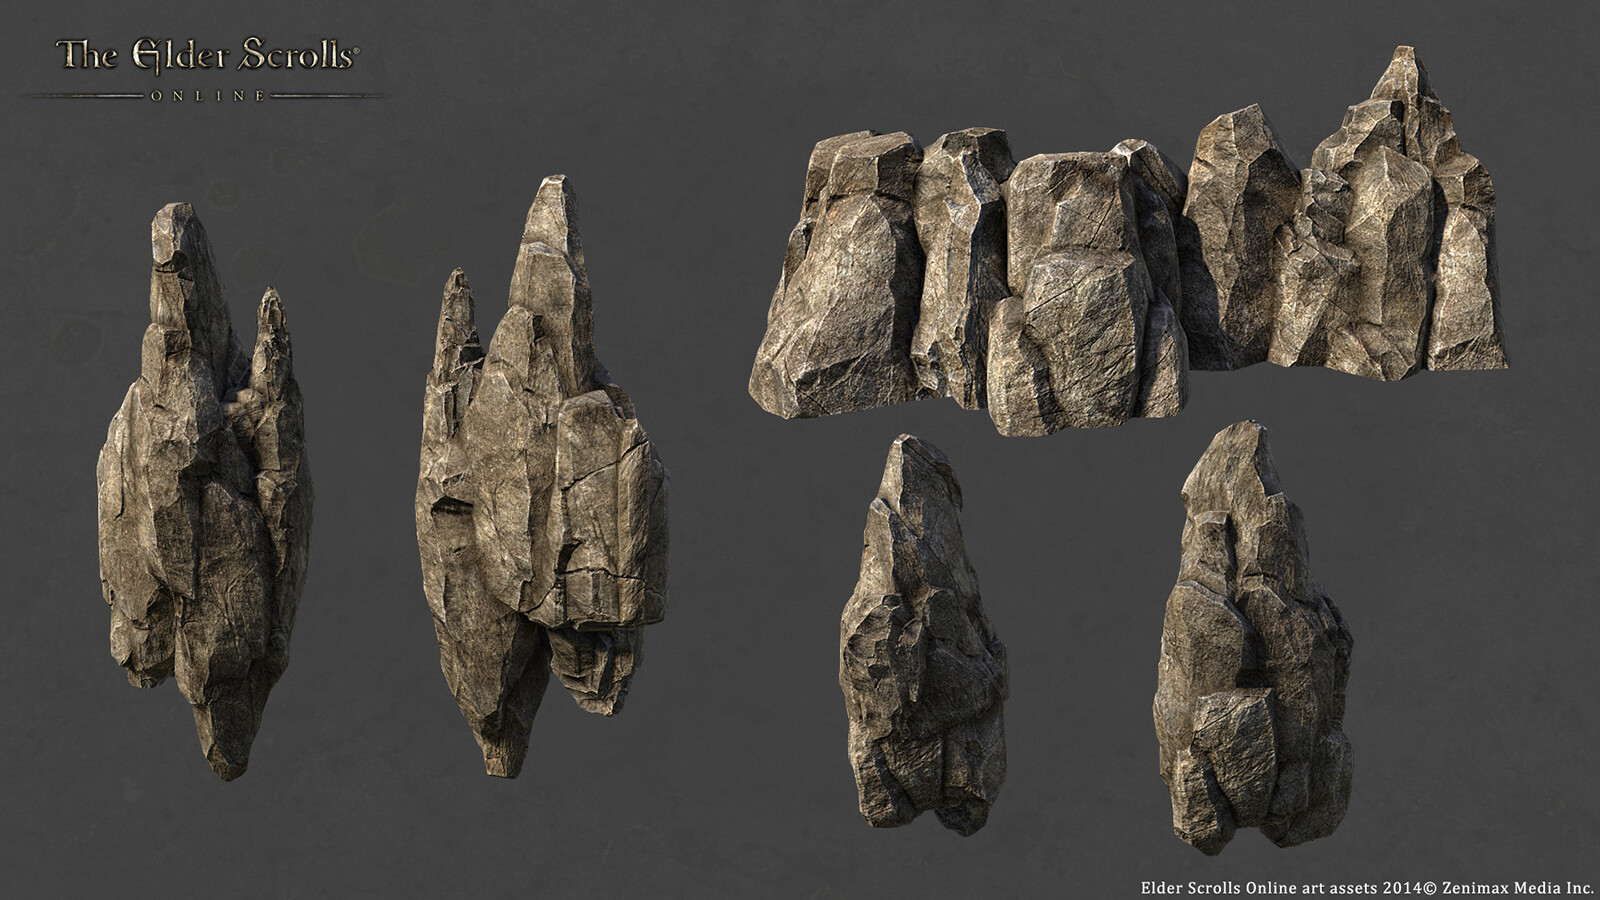 Vertical Cliff Set- created using 3dsmax/Zbrush and Photoshop for ESO.